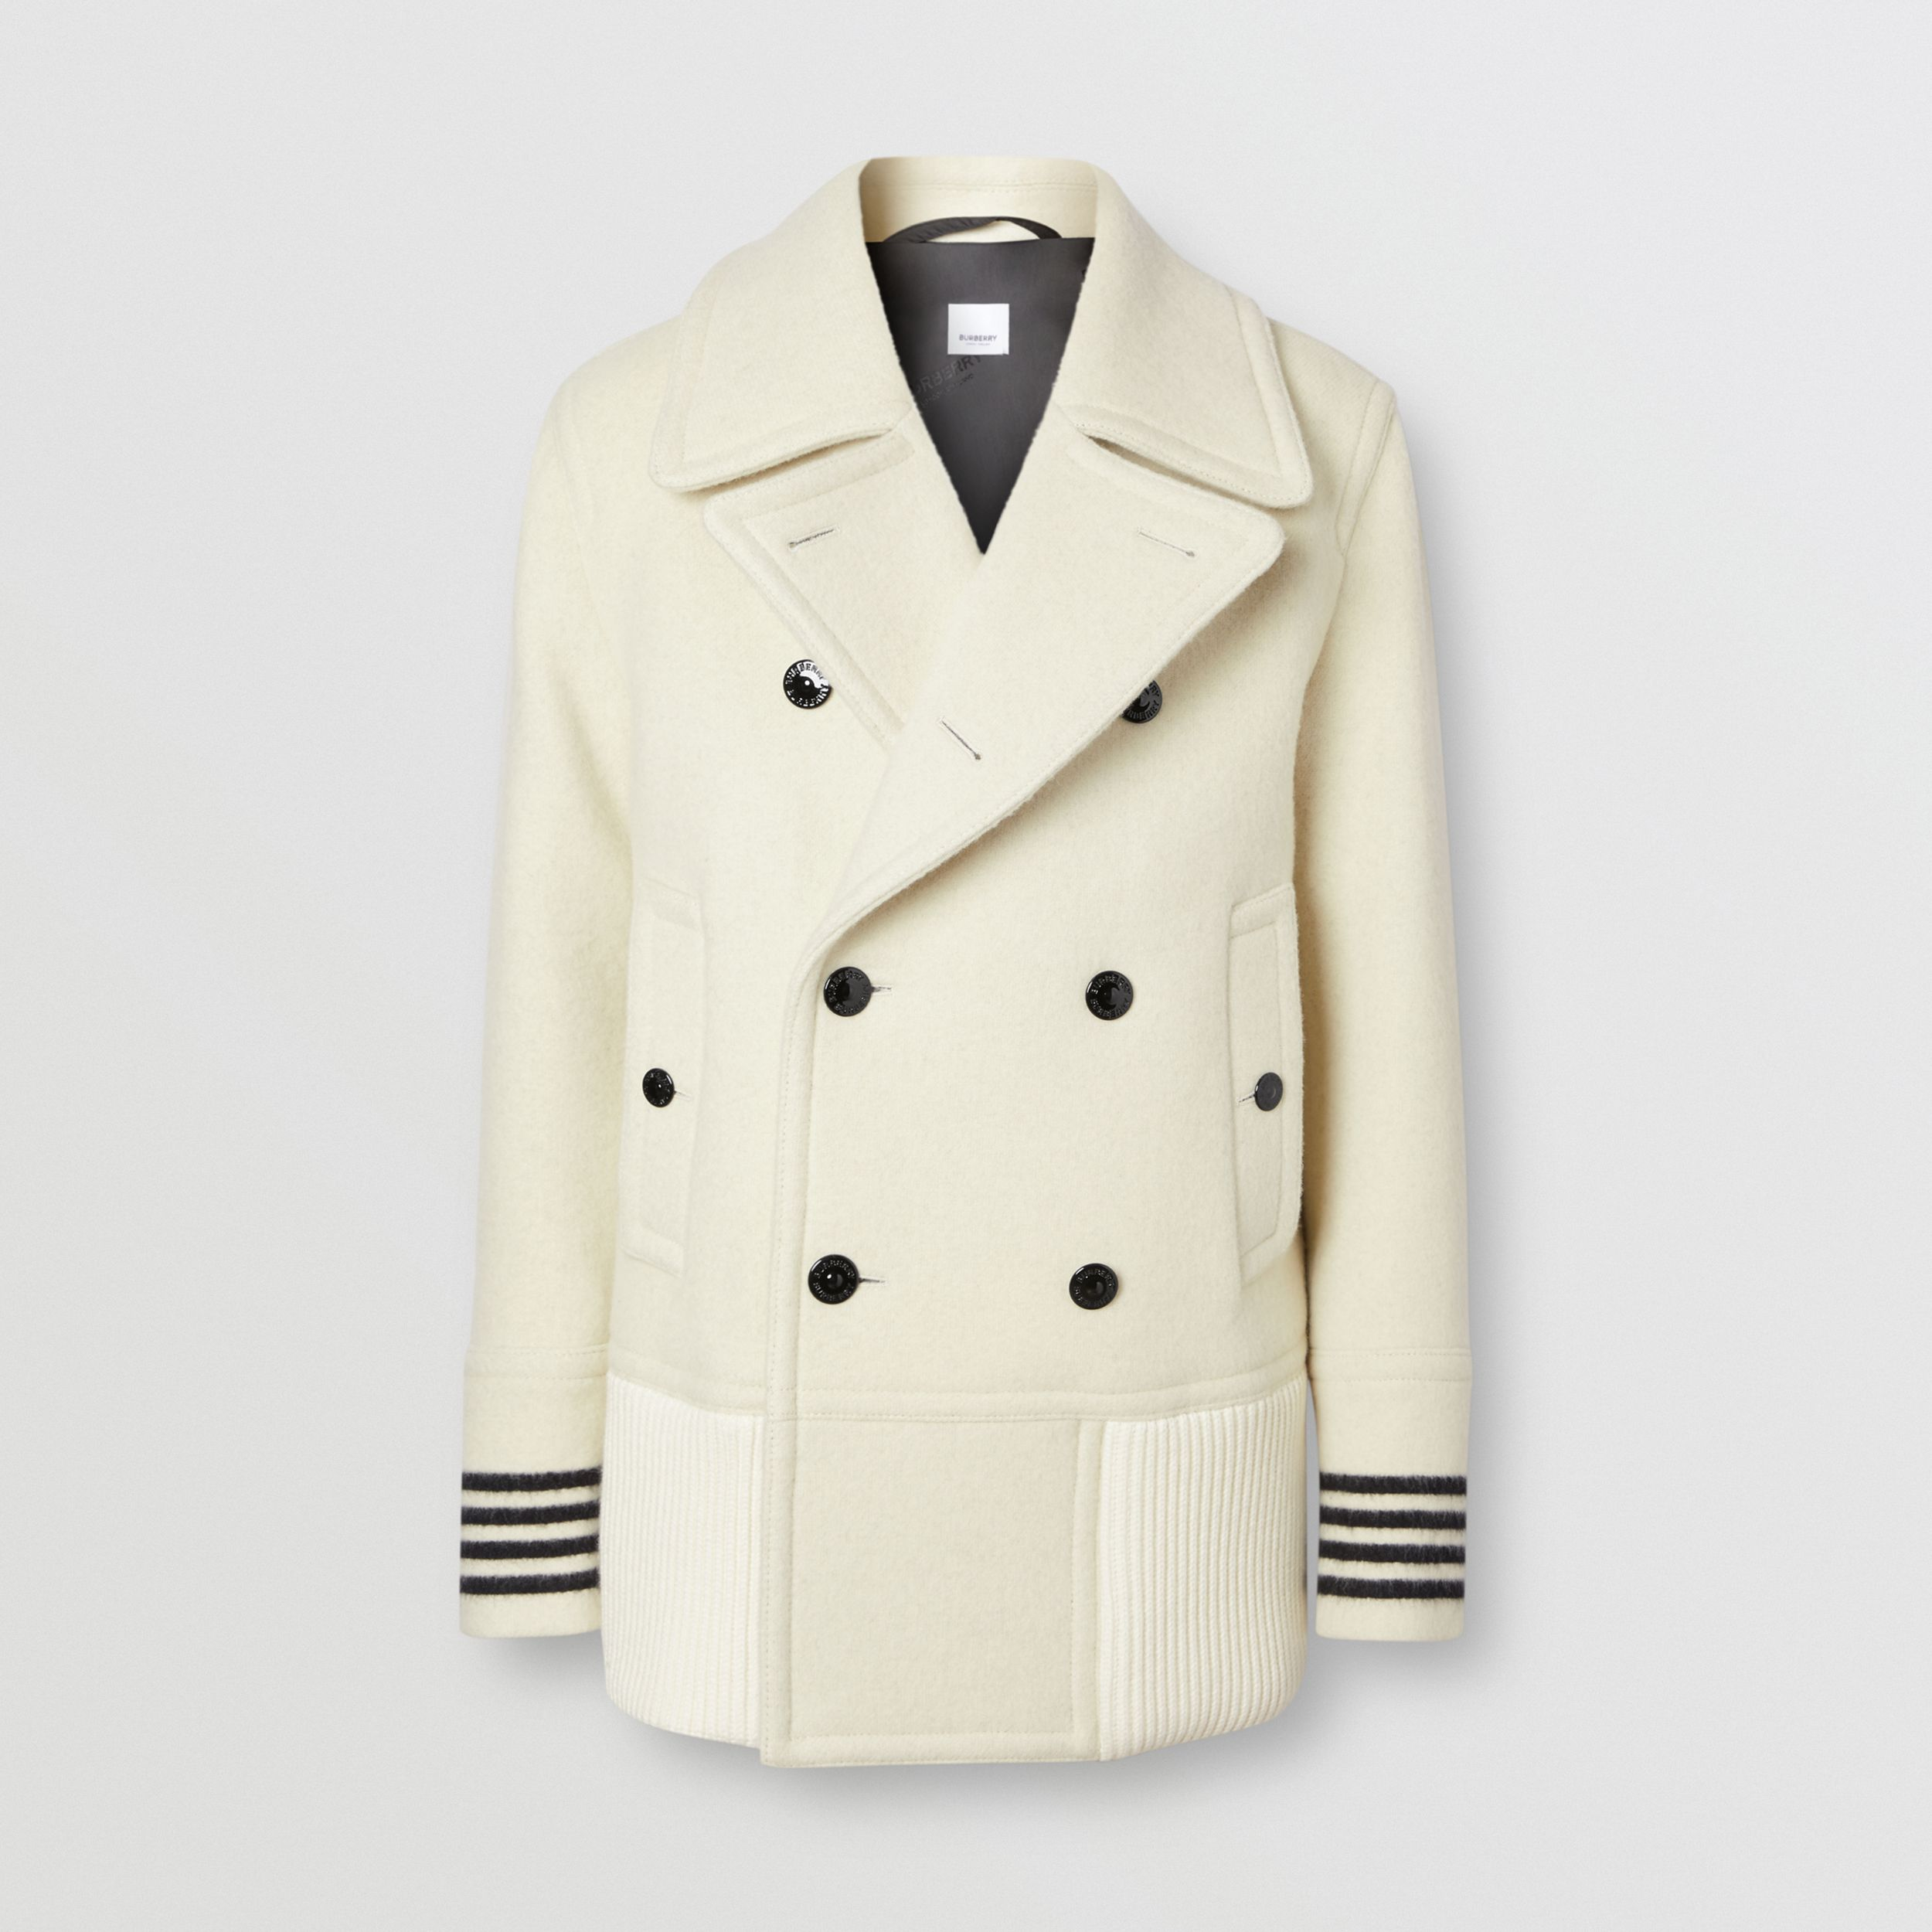 Striped Cuff Wool Pea Coat in White - Men | Burberry - 4